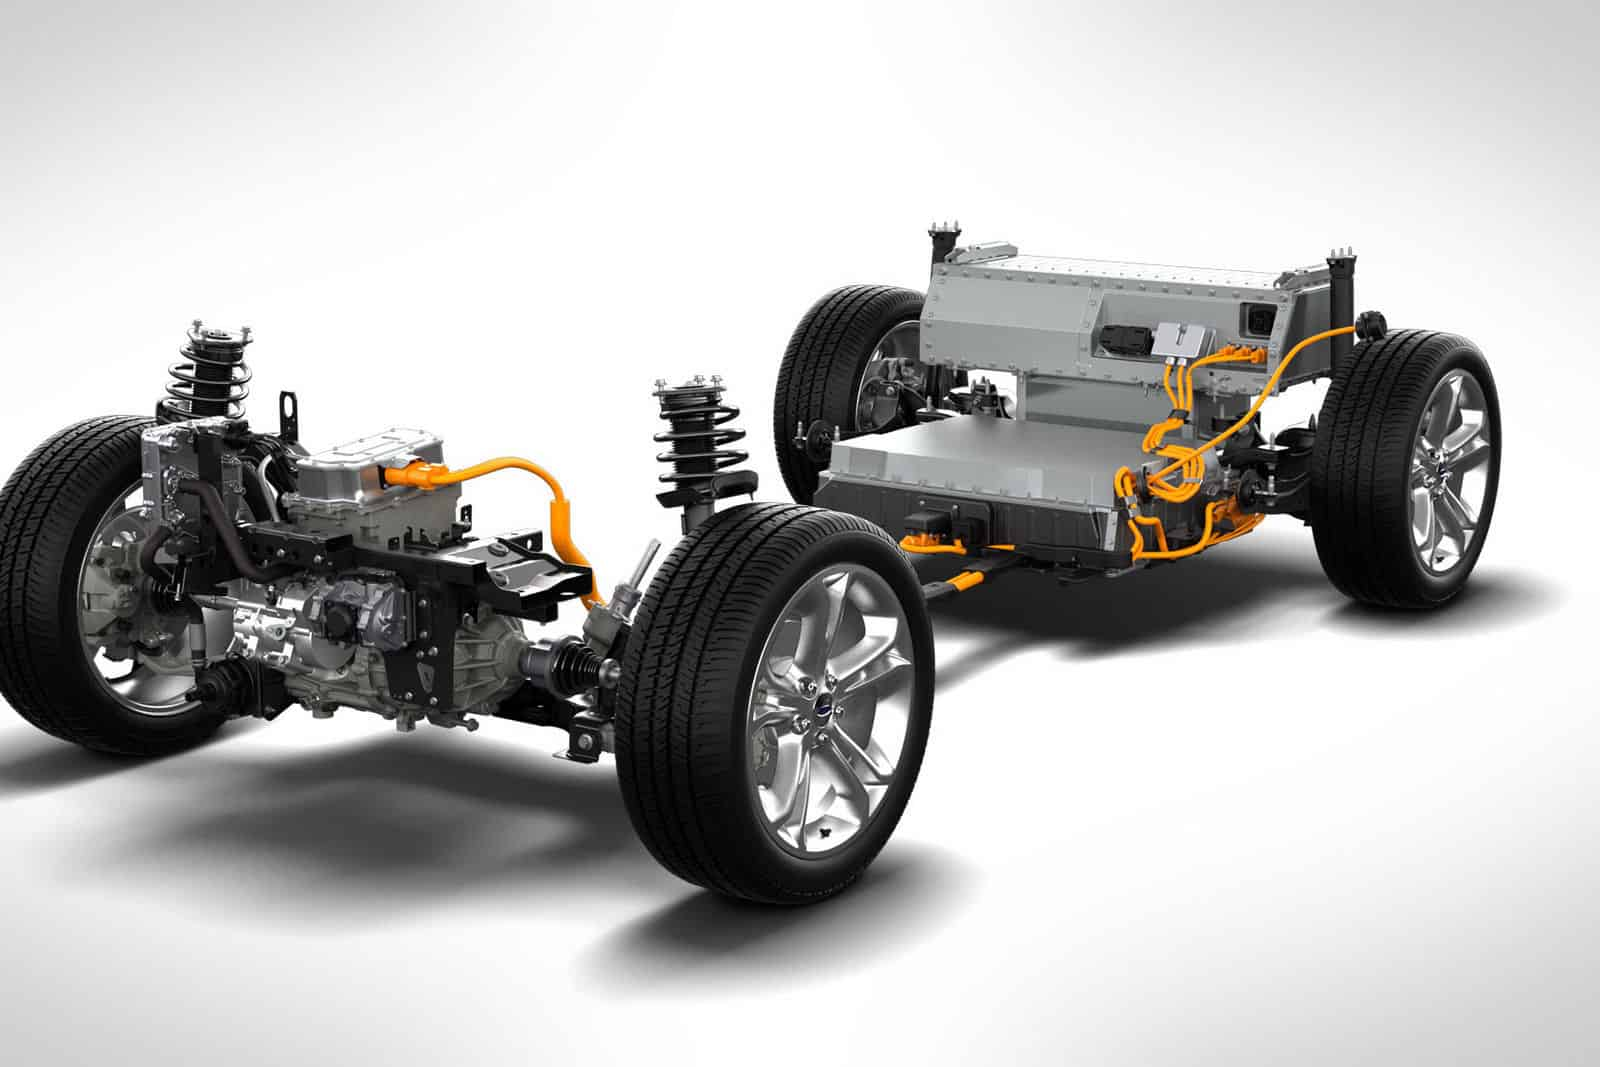 Focus Electric Chassis and Engine picture